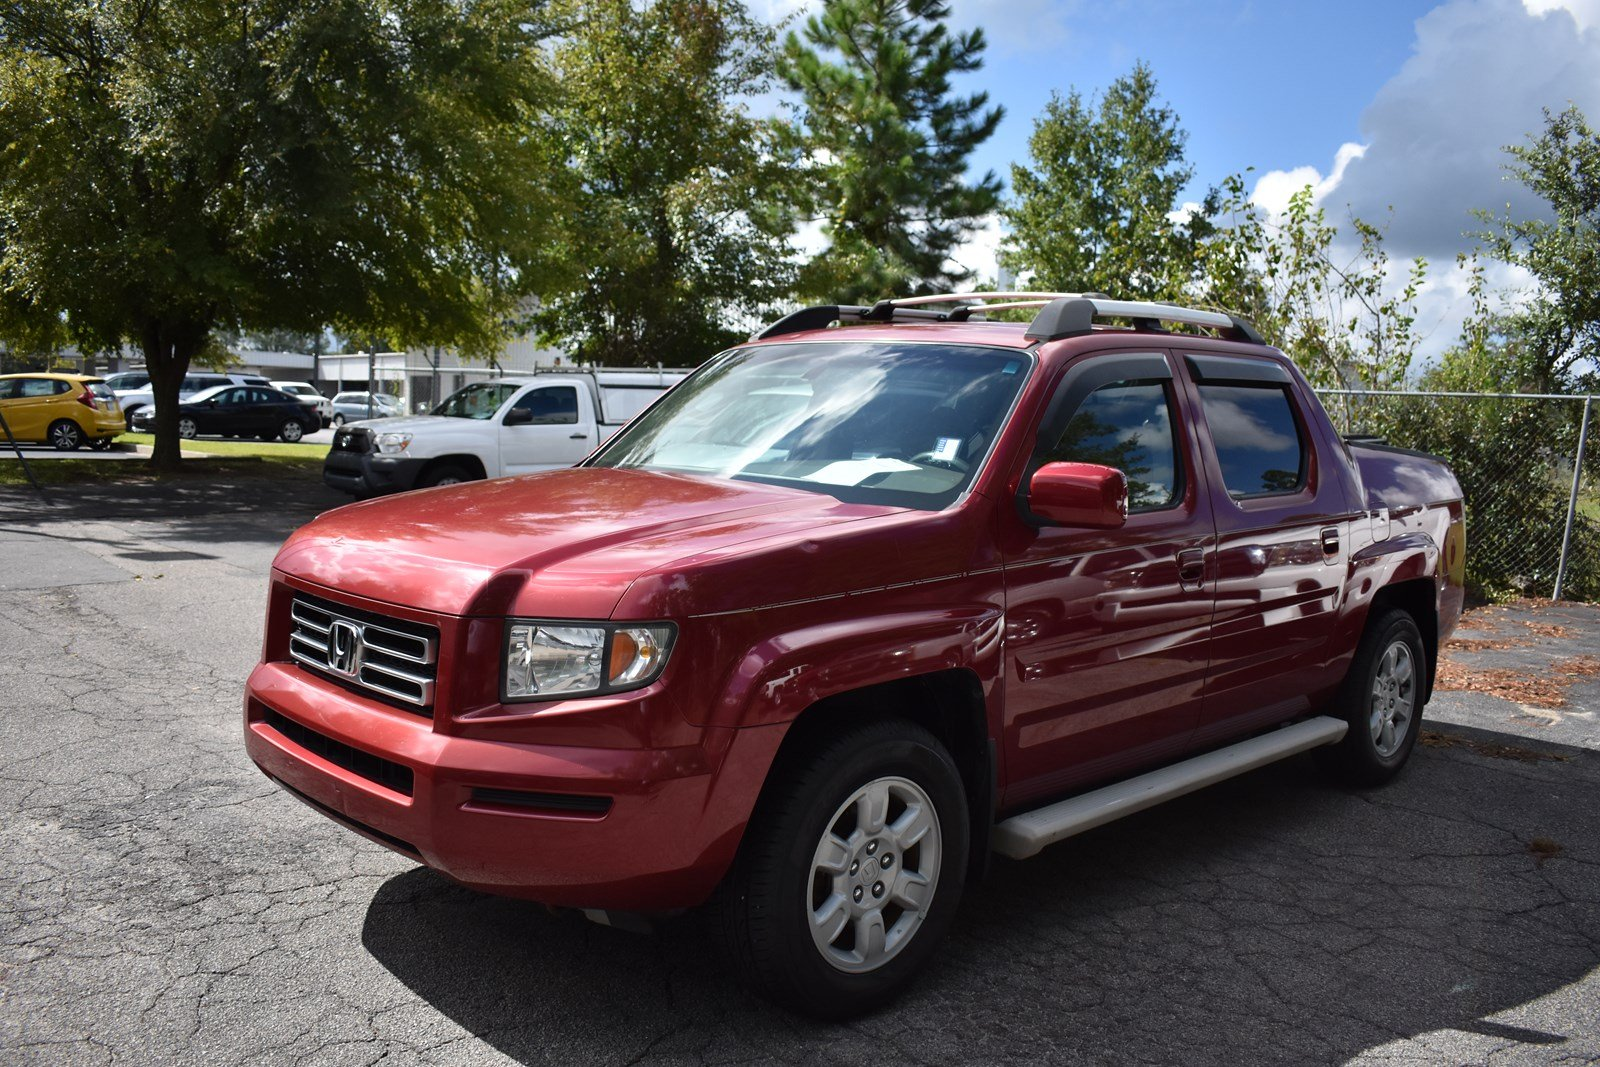 Featured Used 2006 Honda Ridgeline for sale in Waycross, GA